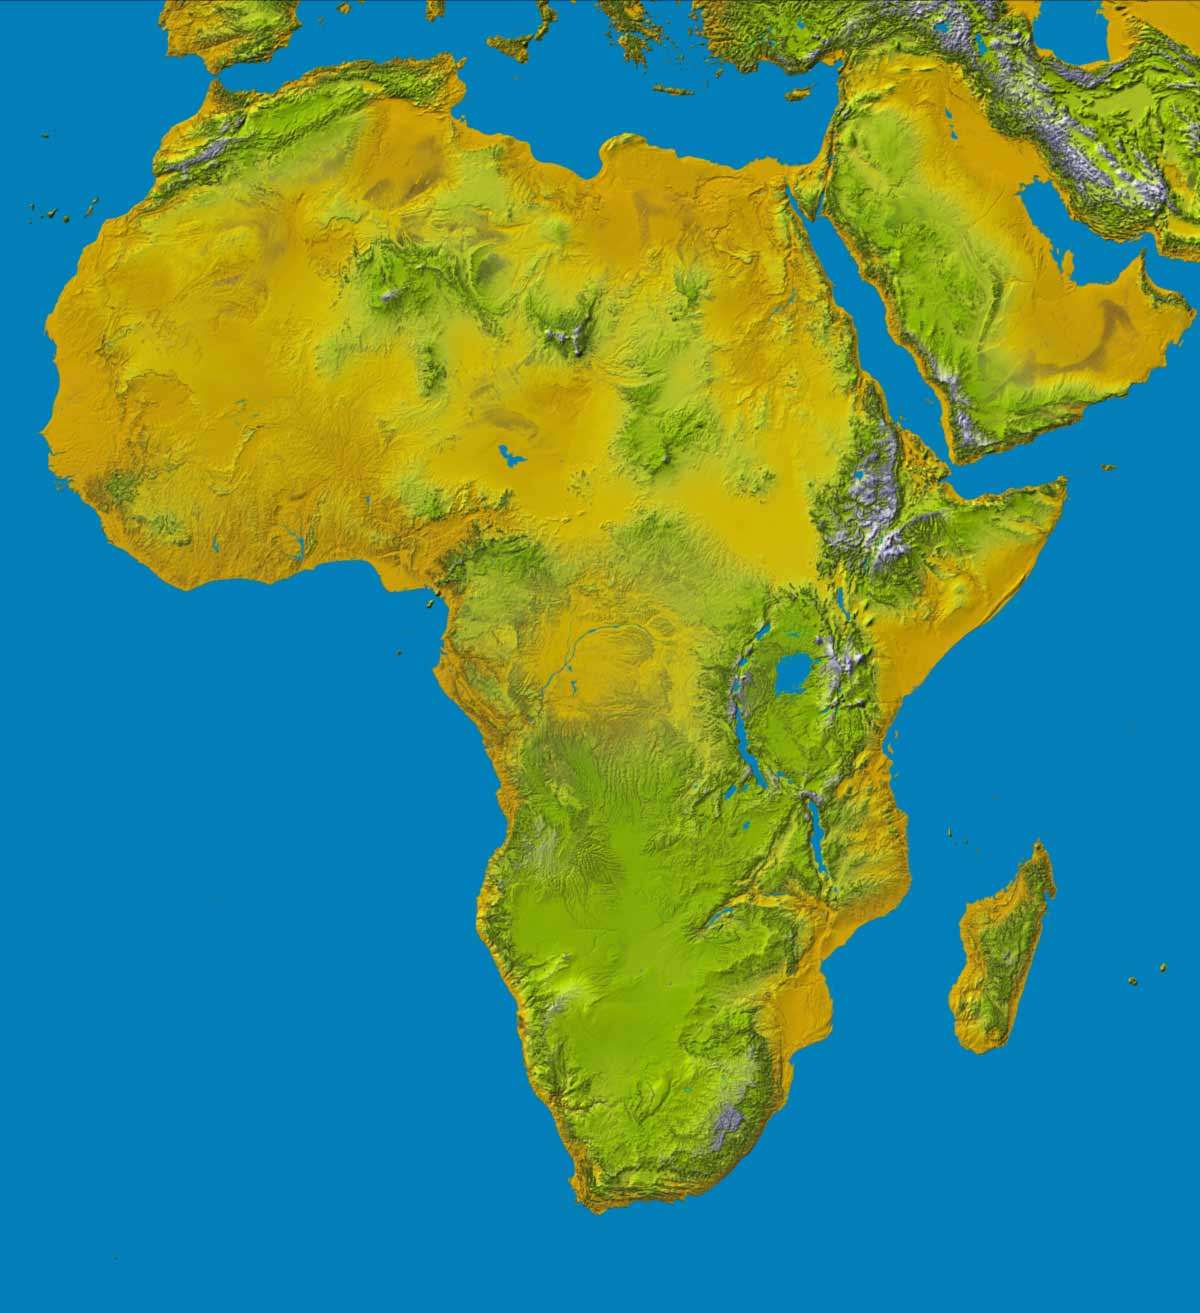 Topography of Africa large map